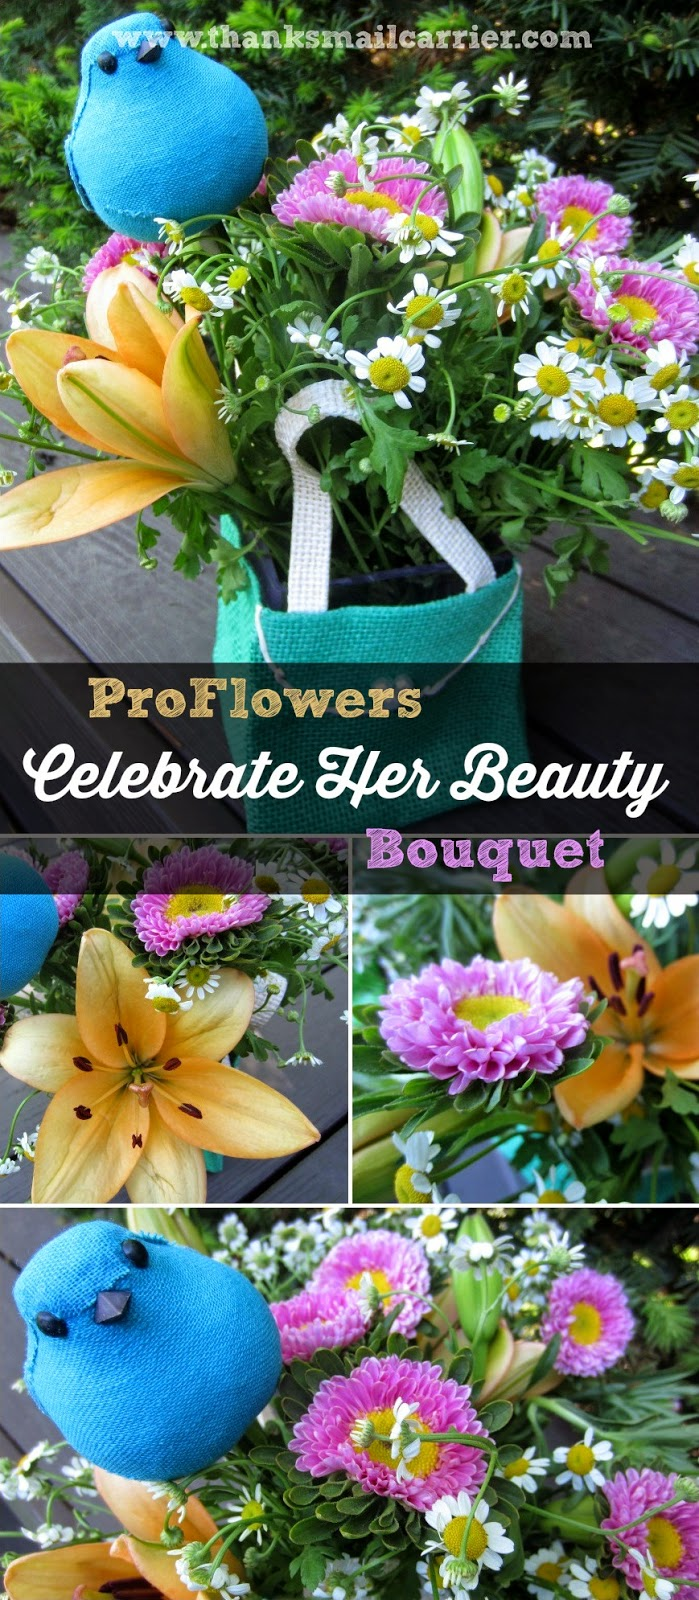 Celebrate Her Beauty bouquet